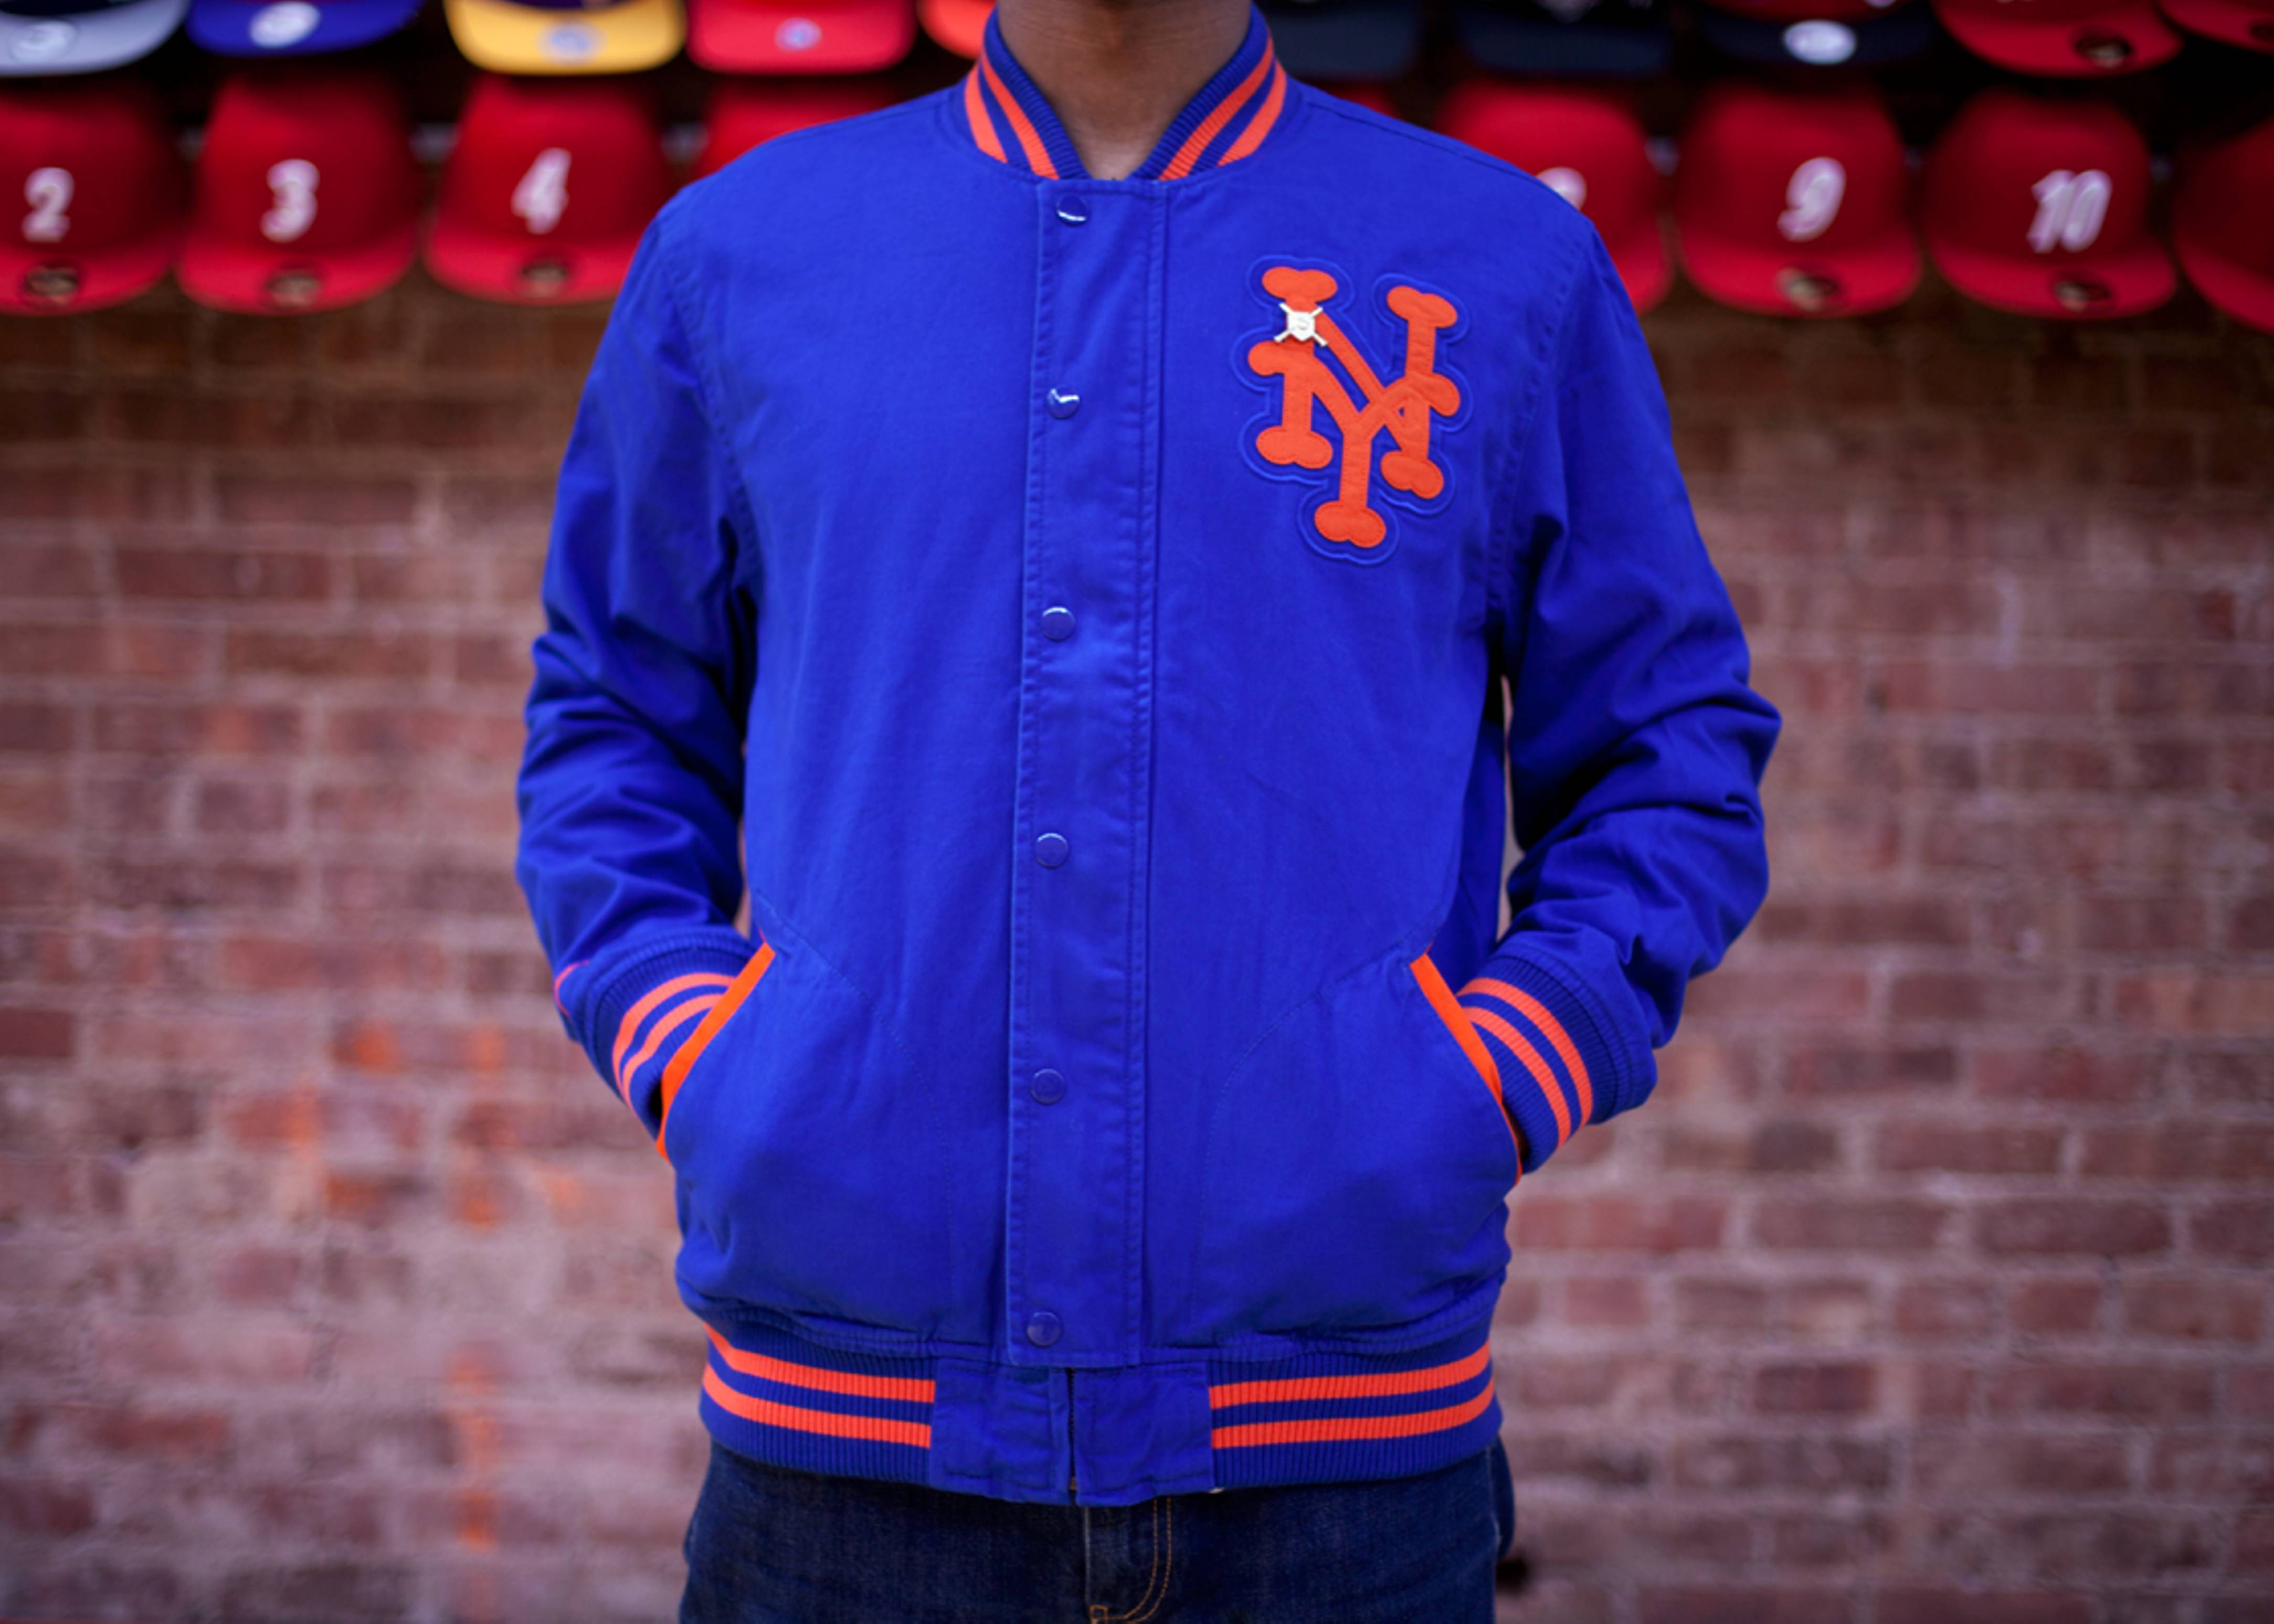 finest selection c36be 9428b New York Mets Vintage Twill Jacket - Mitchell & Ness - 35 ...